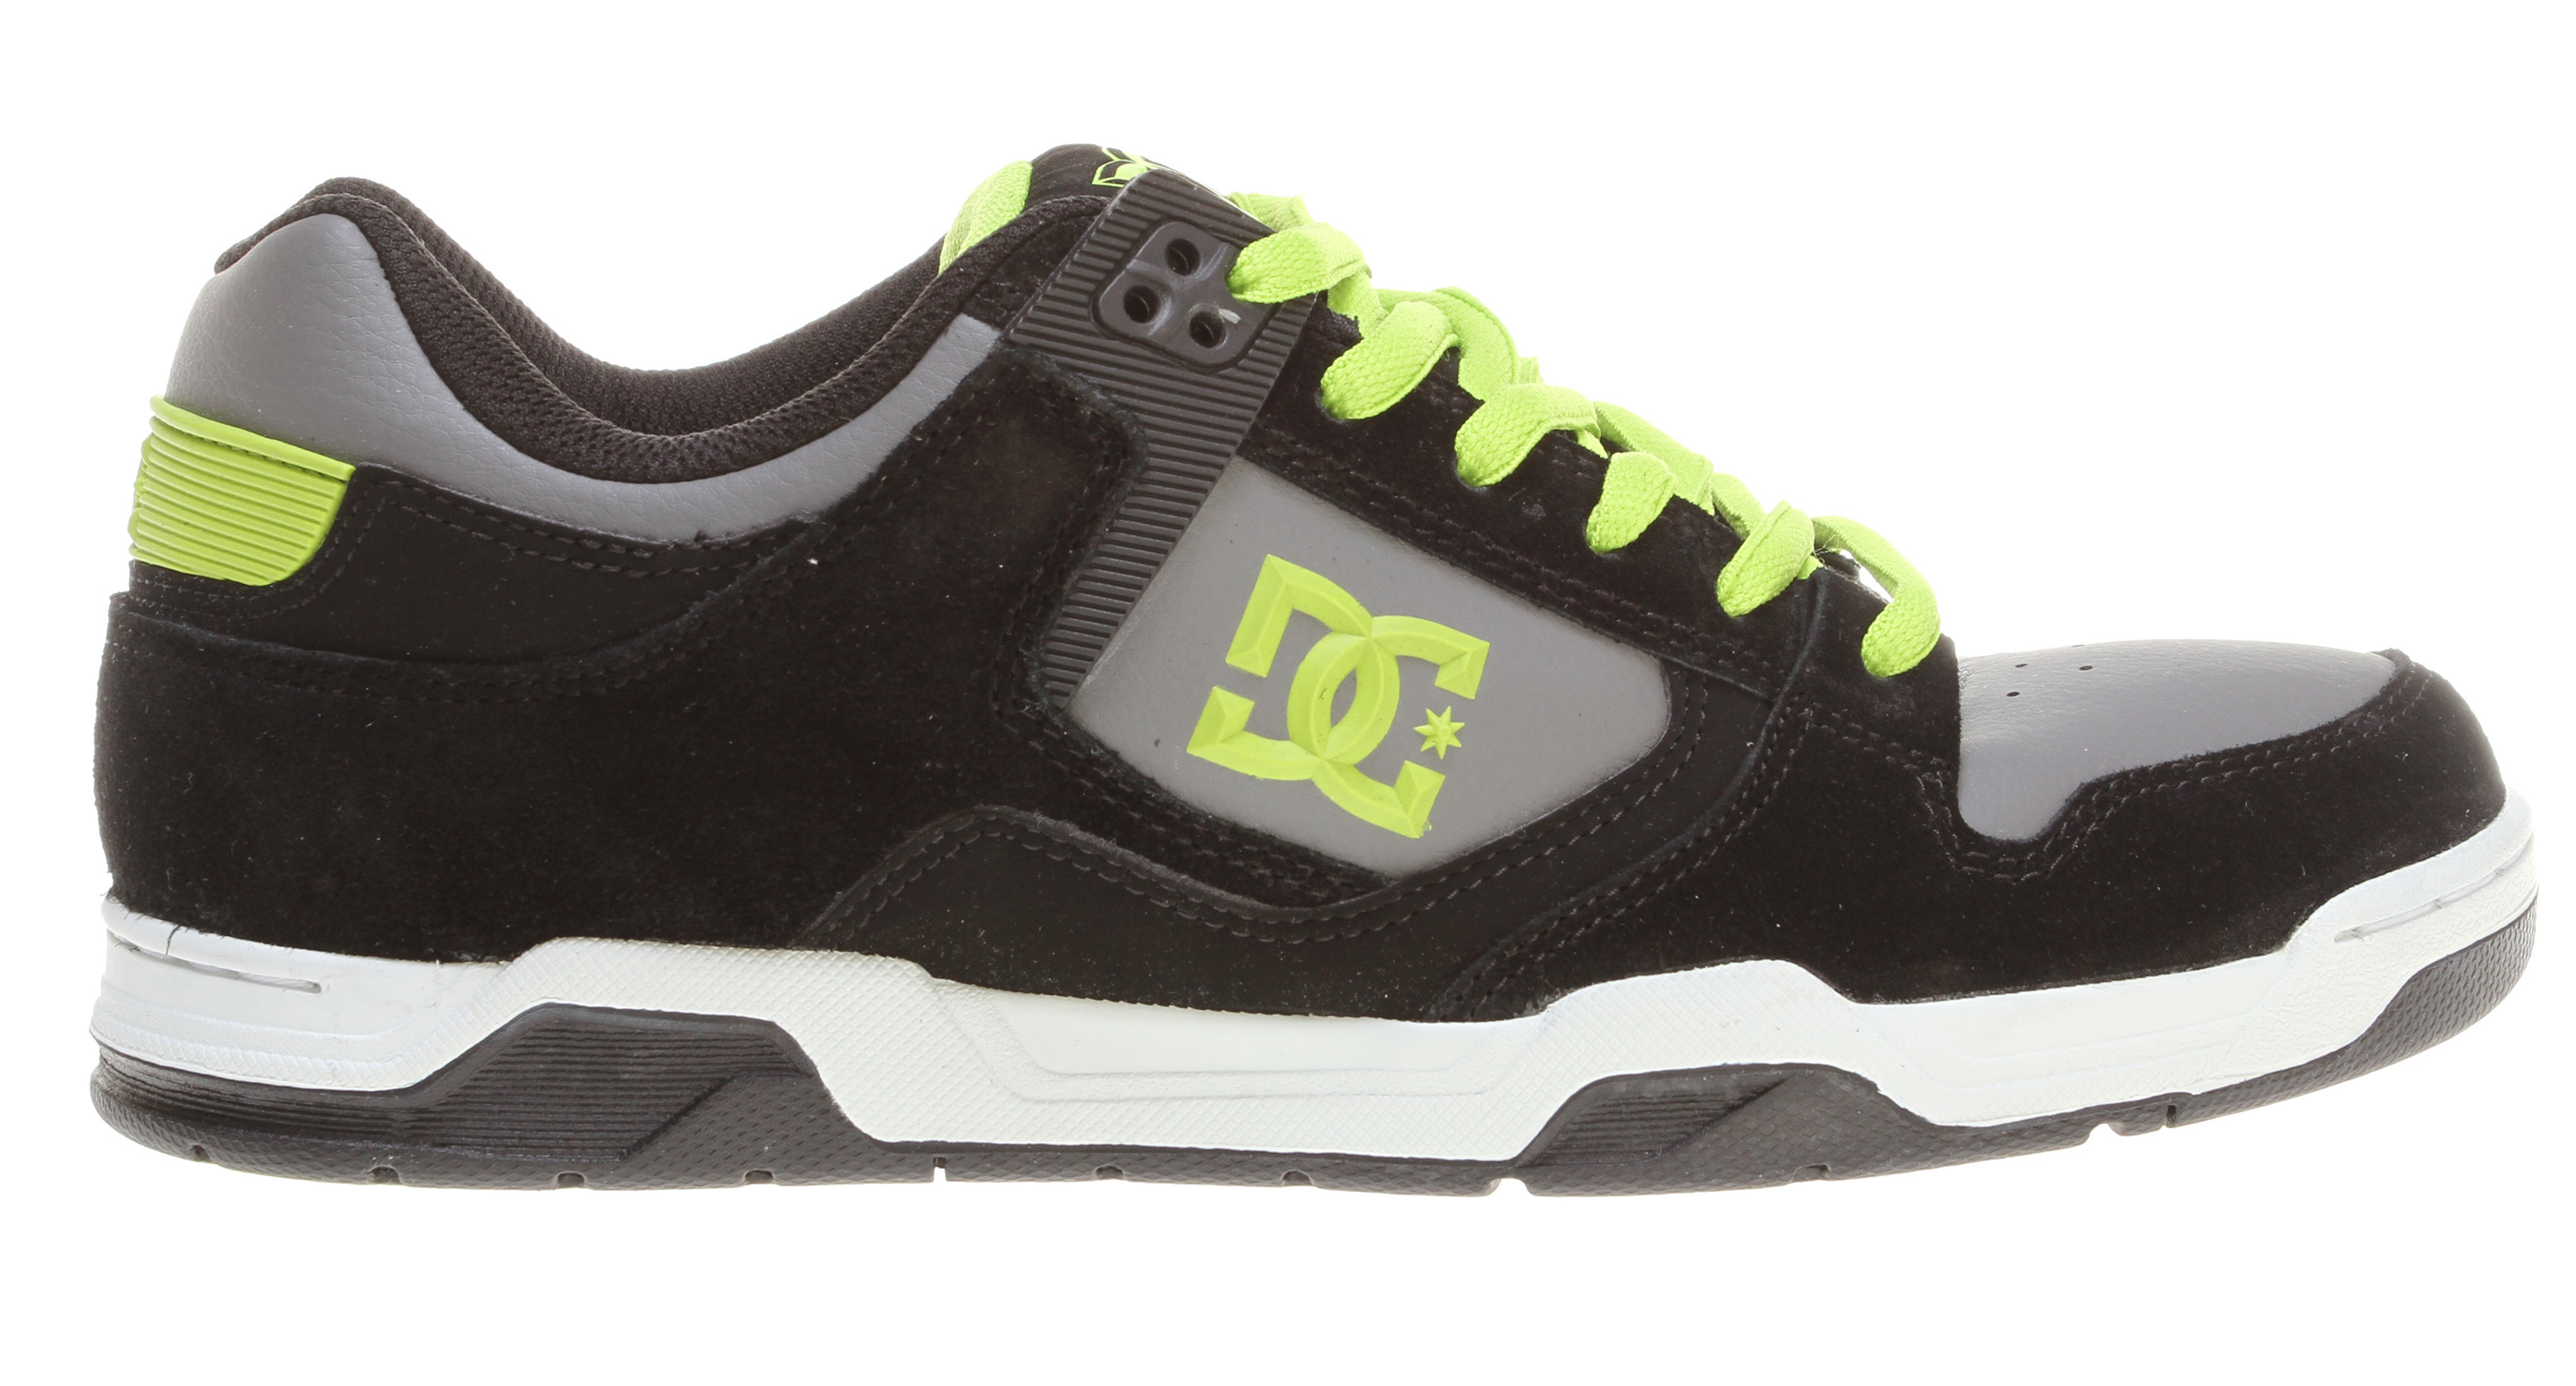 "Skateboard Key Features of the DC Flawless Skate Shoes: Heavy-Duty Suede Upper Perforated Upper Panel TPU Eyelets Foam-Padded Tongue and Collar for added Comfort & Support Lightweight Mesh Tongue Spandex Tongue Holders for Comfort DC's Performance Wrap Cup Sole Abrasion-Resistant Sticky Rubber Outsole with DC's Trademarked ""Pill"" Pattern - $48.95"